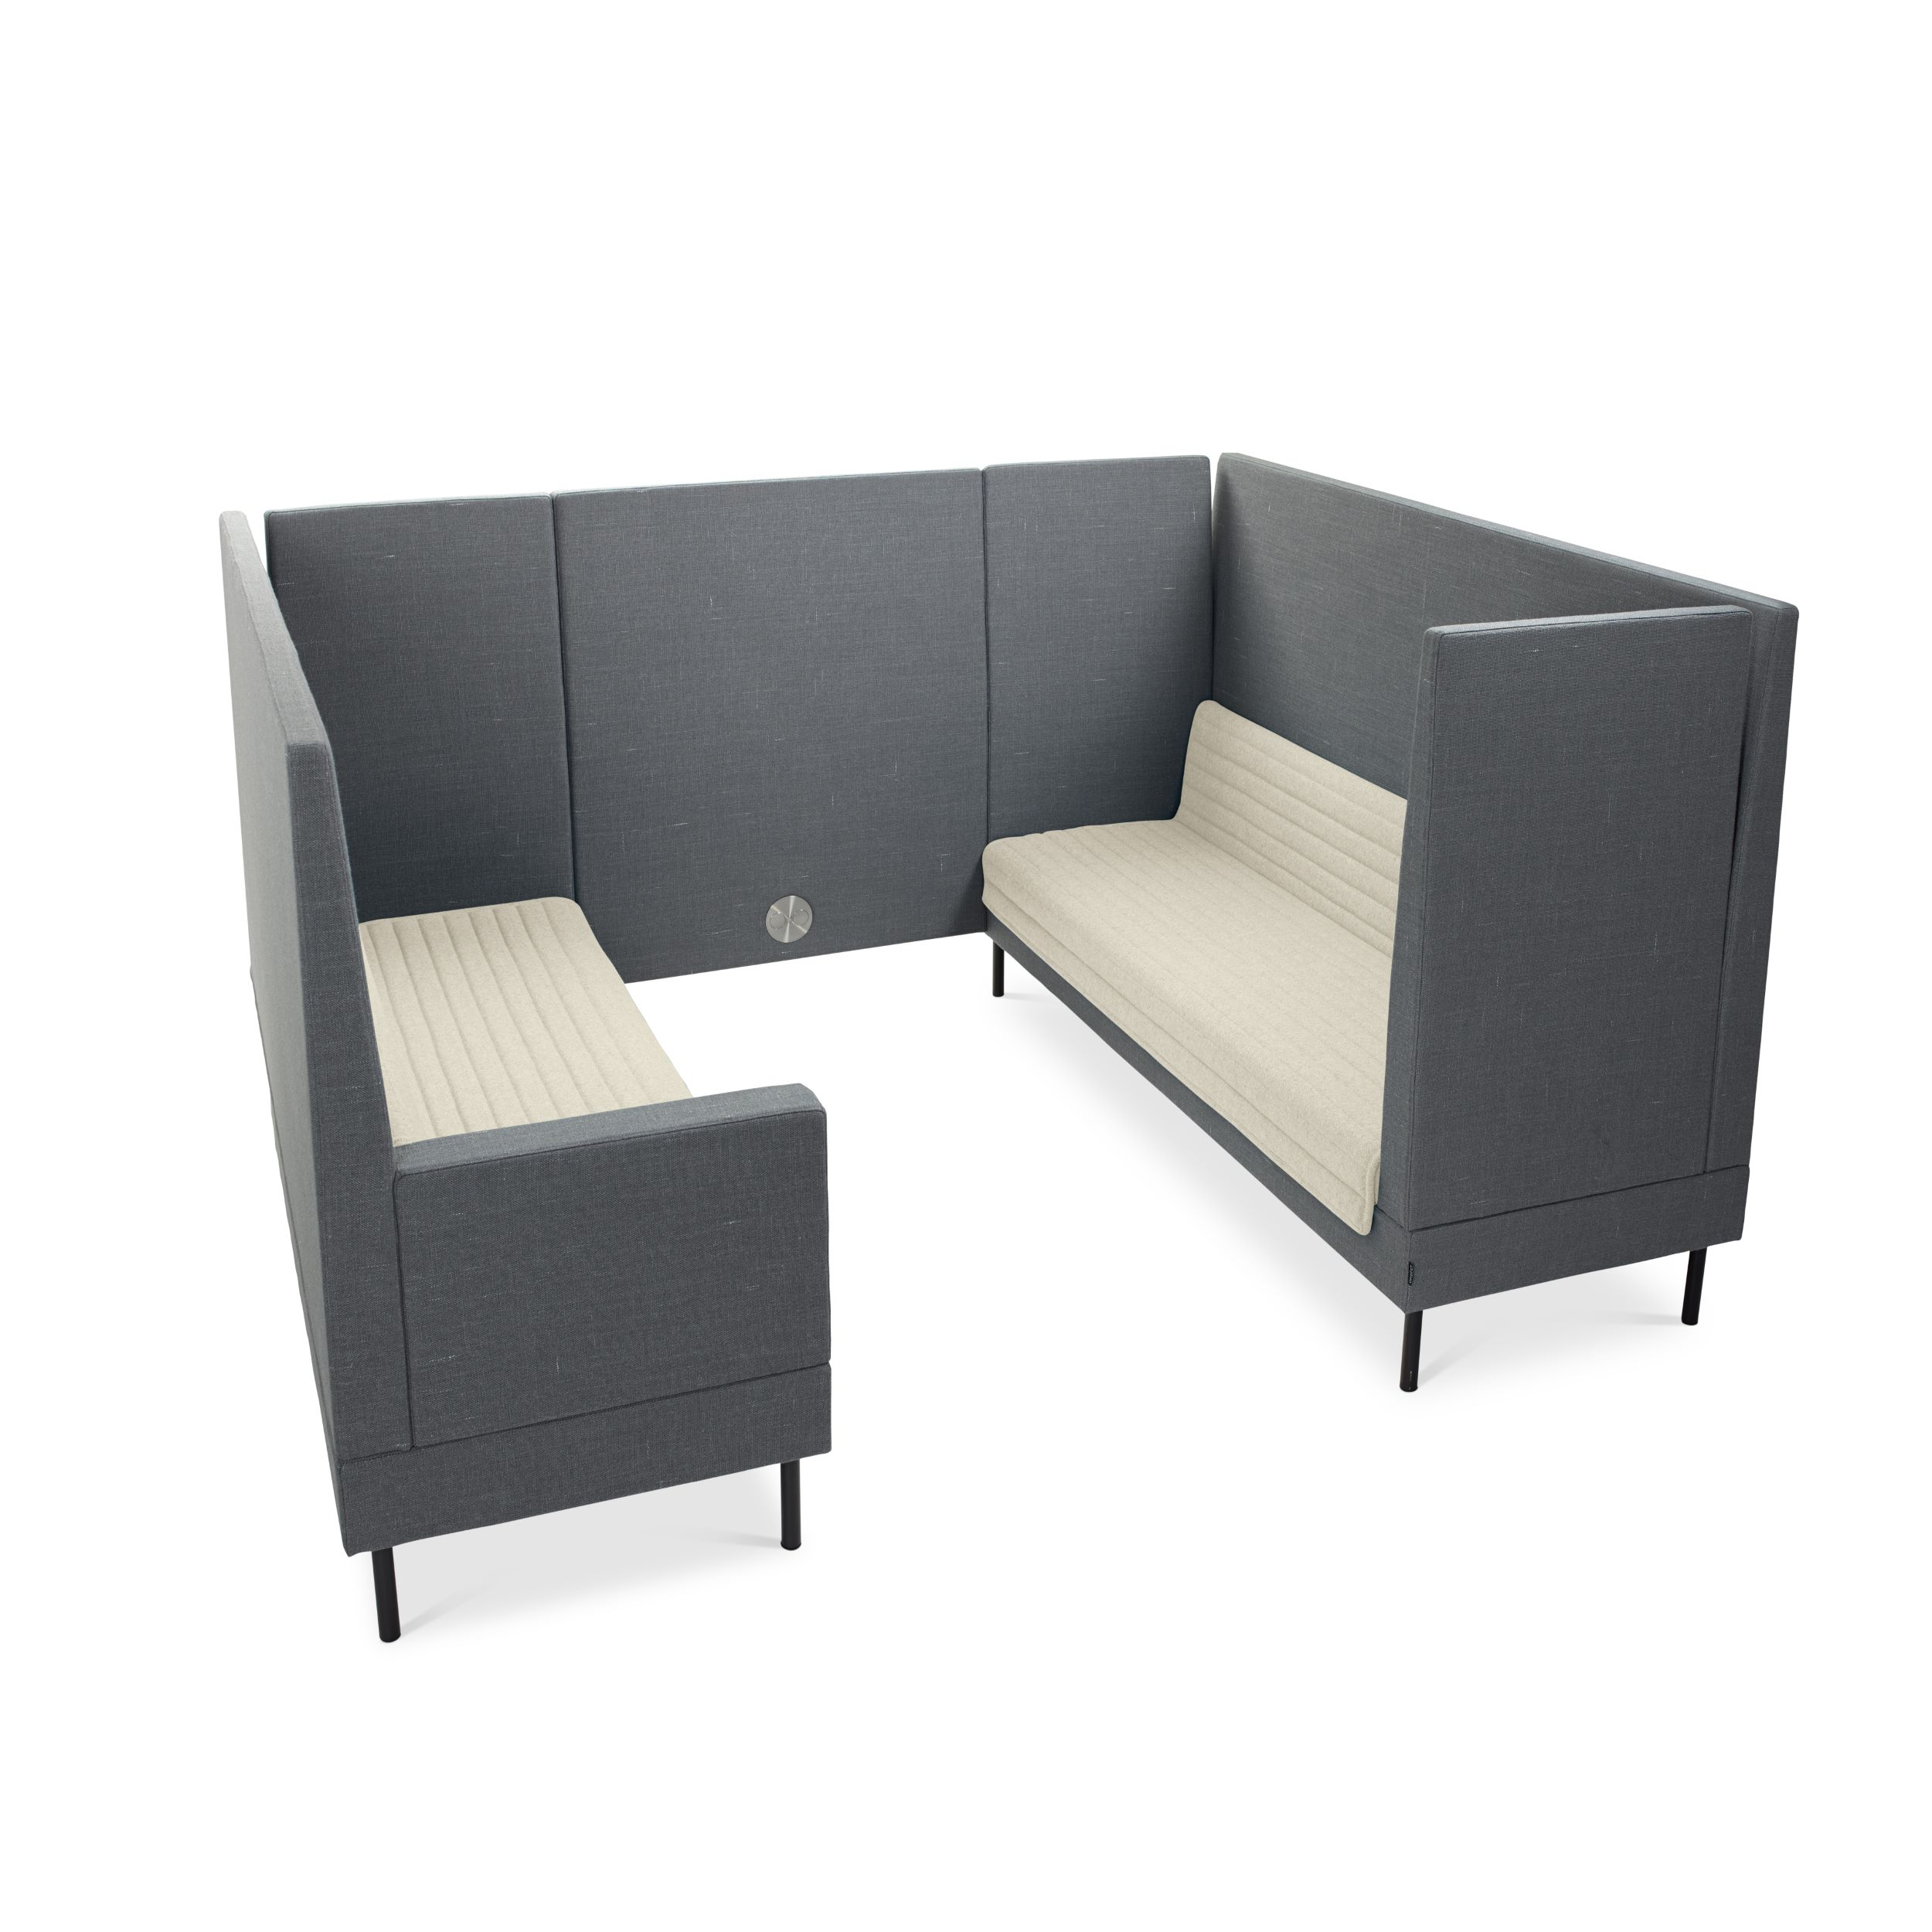 Smallroom Select Sofa With Room Dividers Ineke Hans Offecct - Sofa for a small room